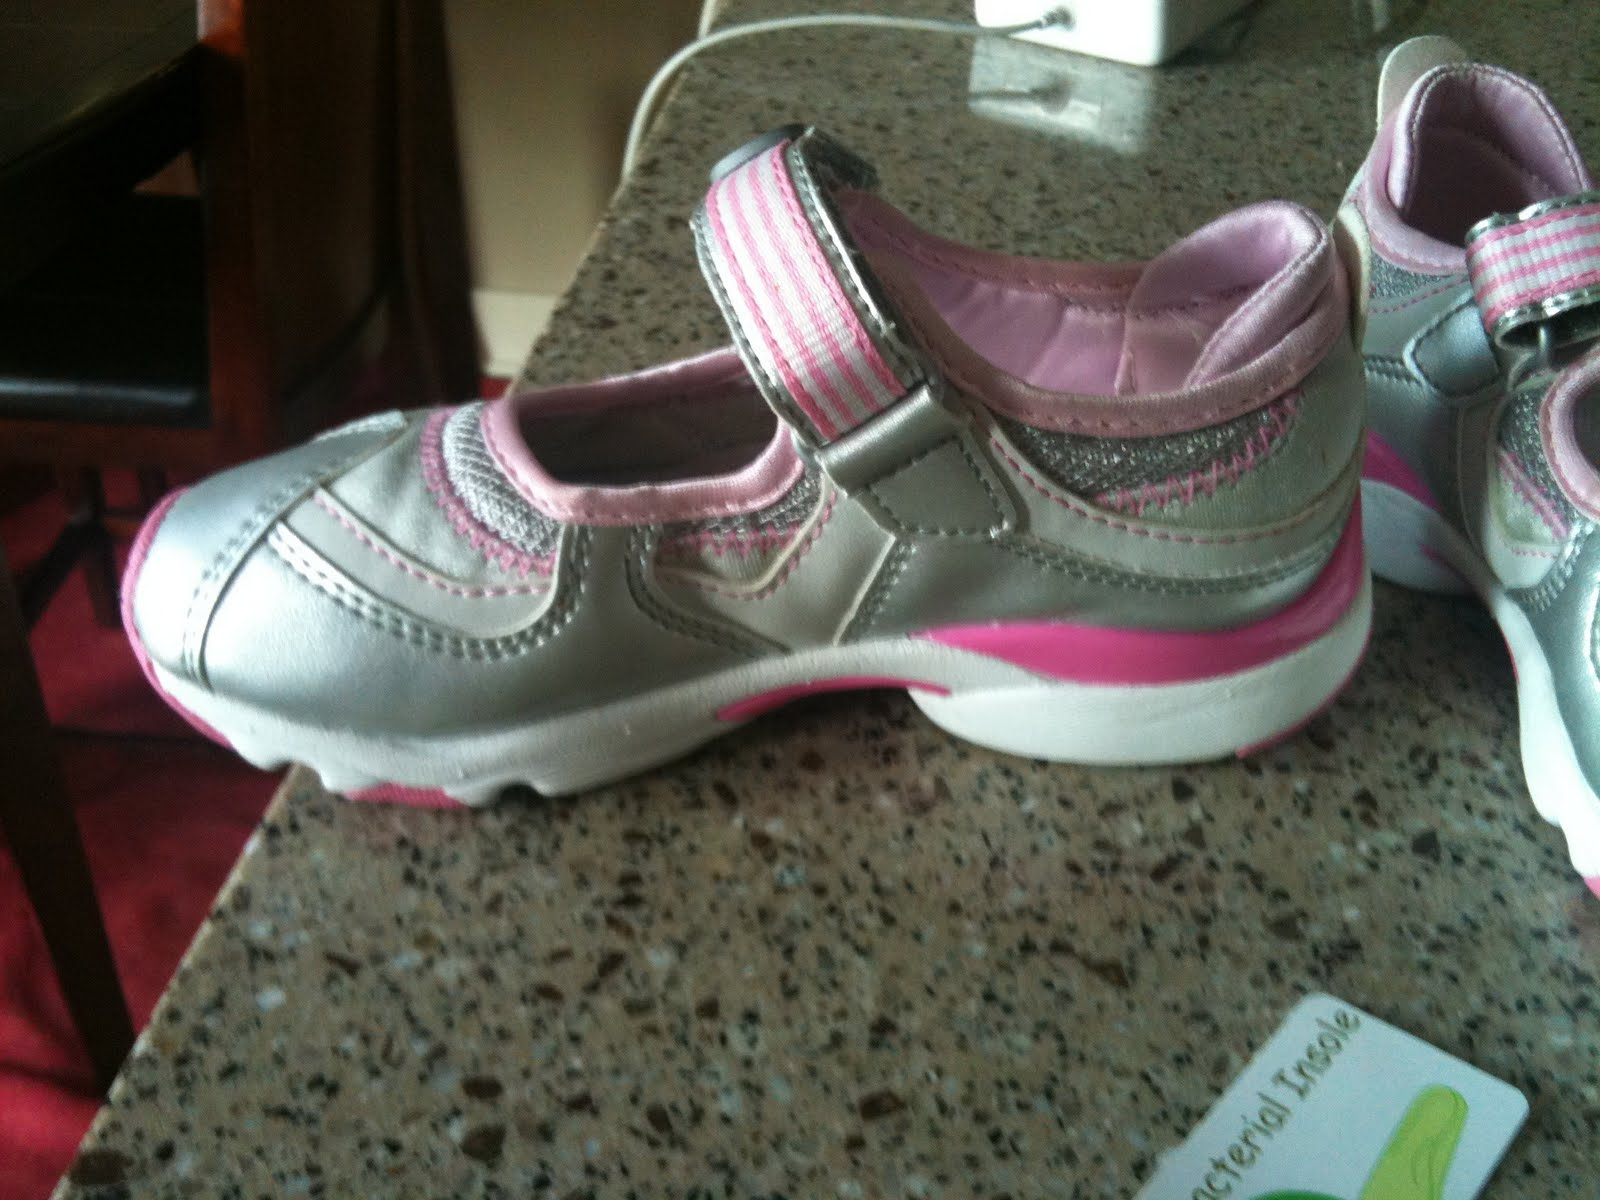 Luxe baby will wear these